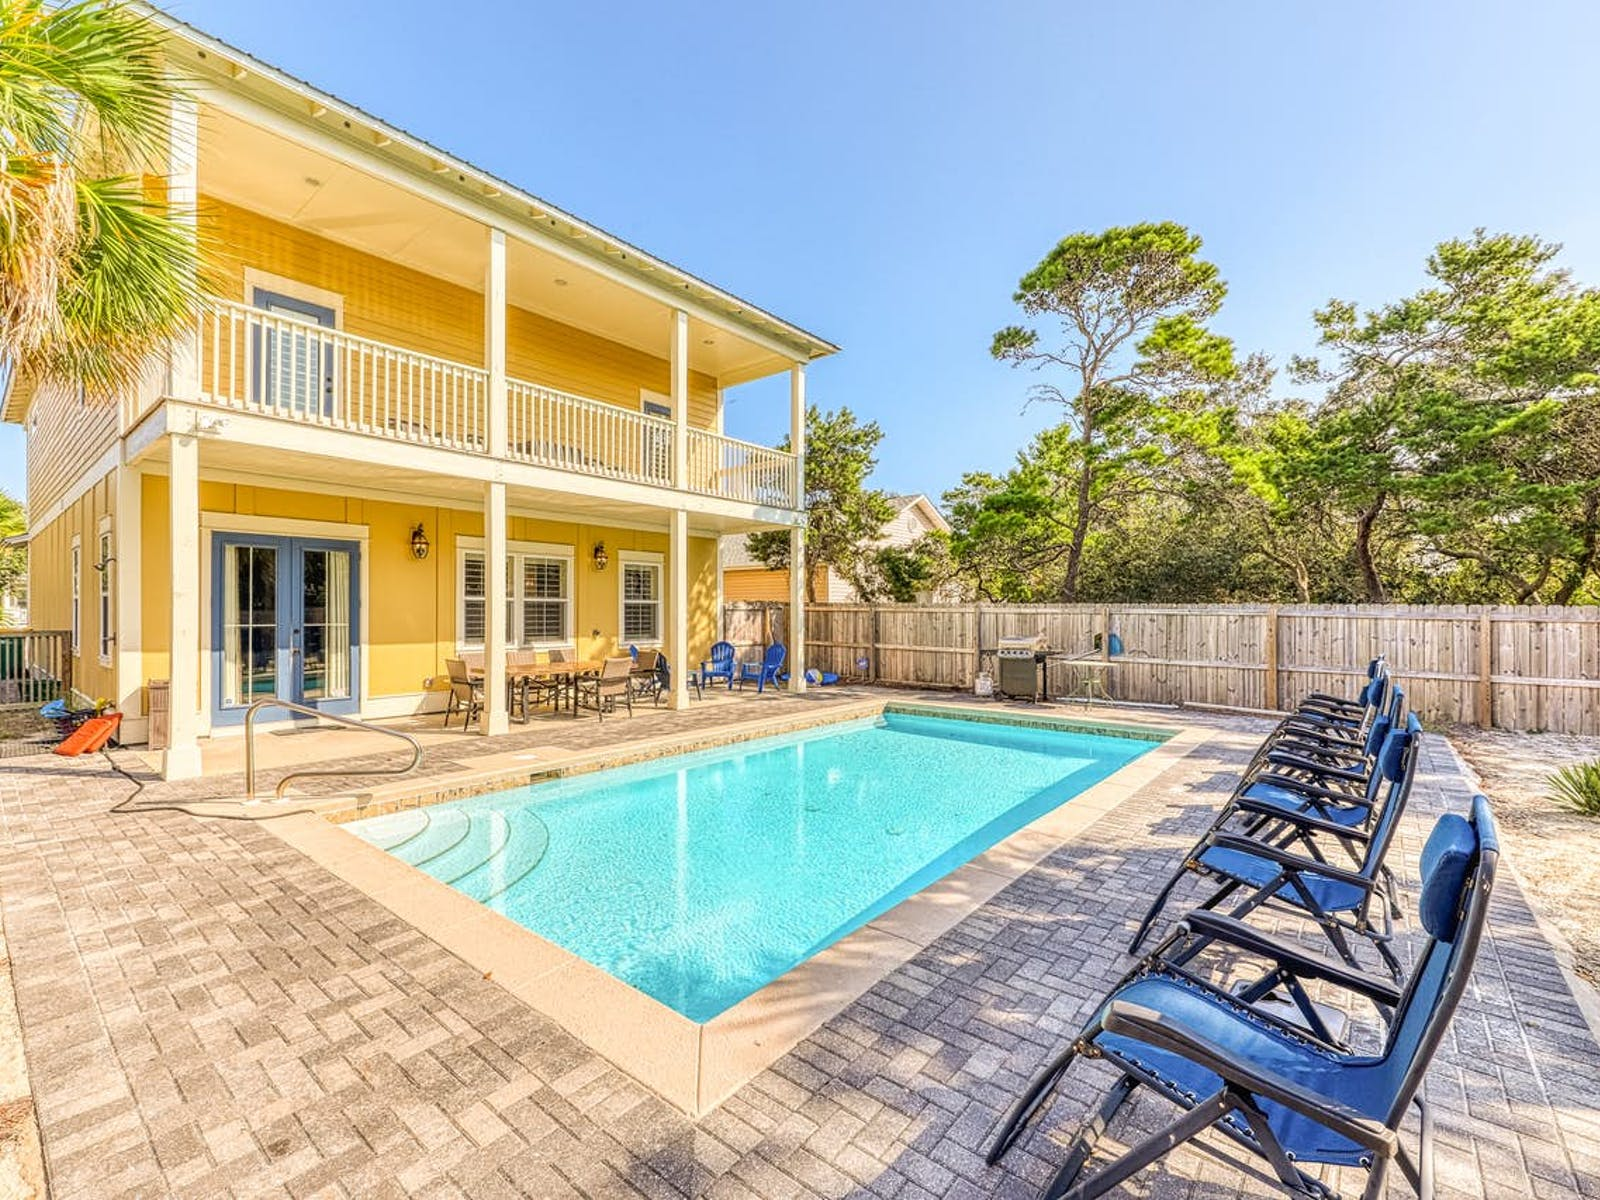 Yellow vacation home in Destin, FL with private outdoor pool